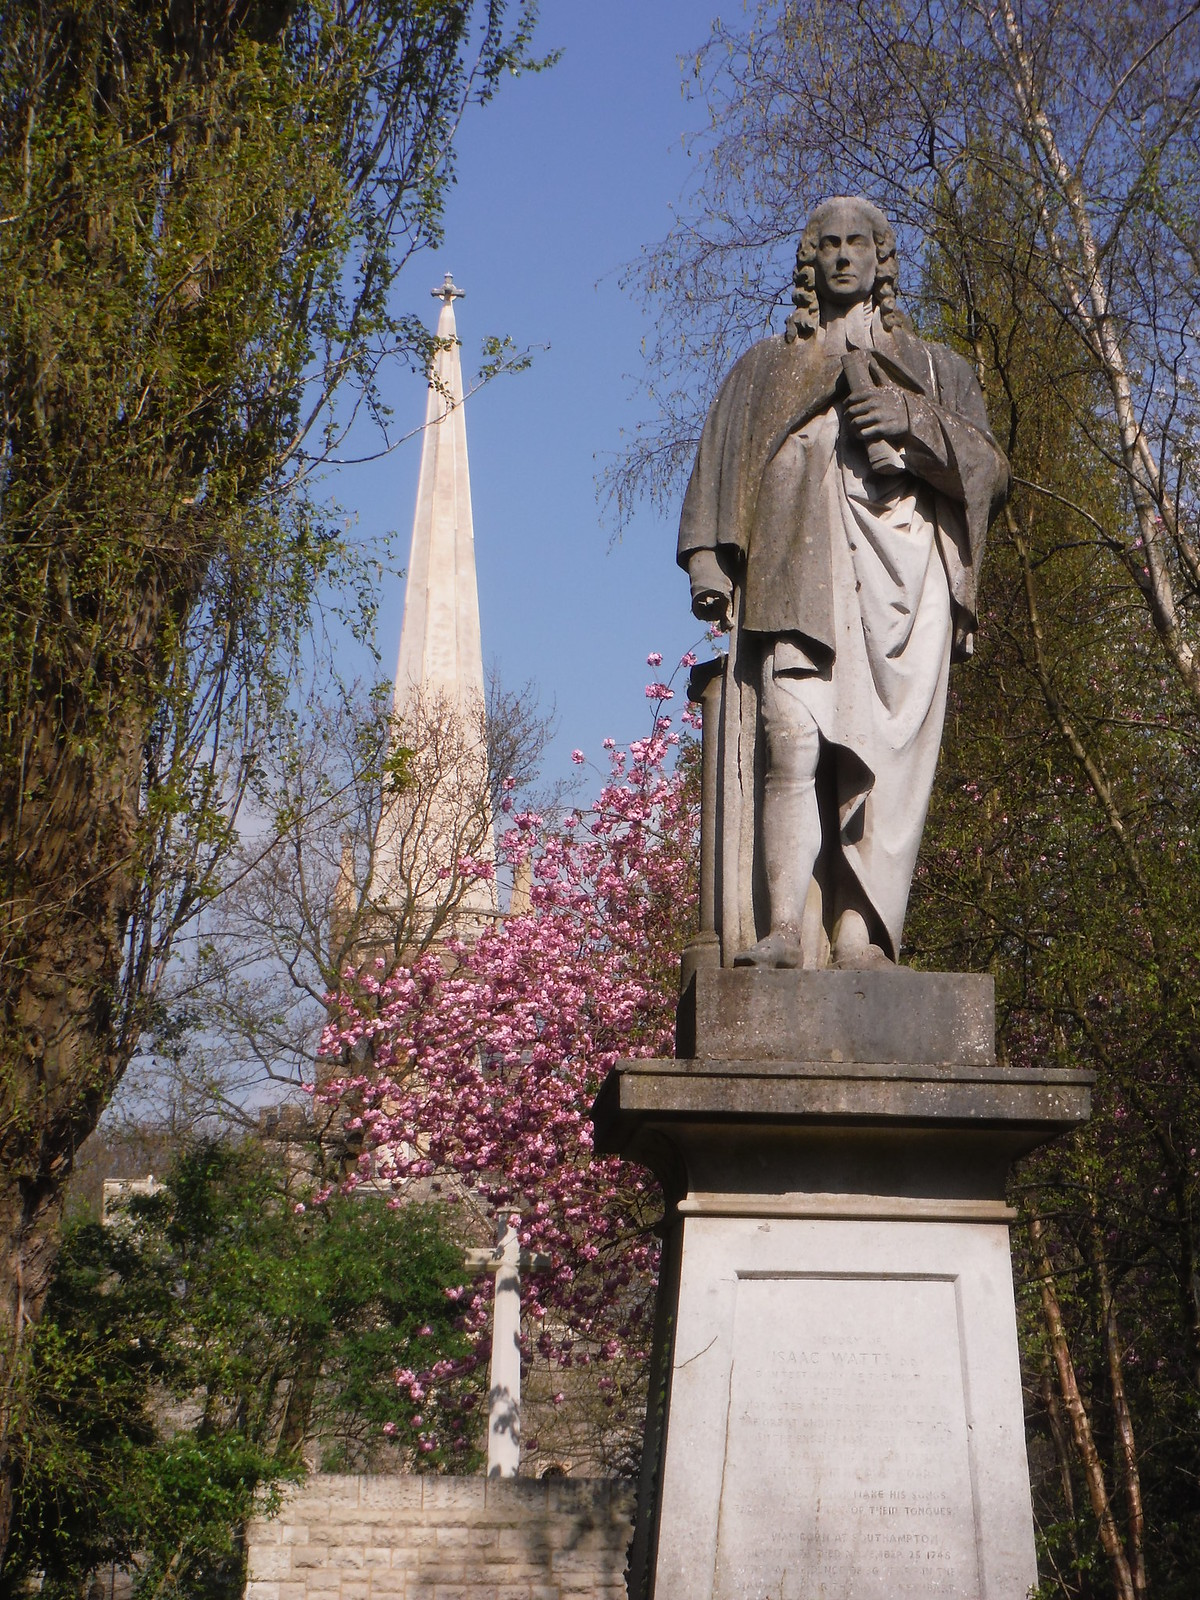 Dr Isaac Watts Monument and Chapel Spire, Abney Park Cemetery SWC Short Walk 26 - Woodberry Wetlands (Stoke Newington Reservoirs)